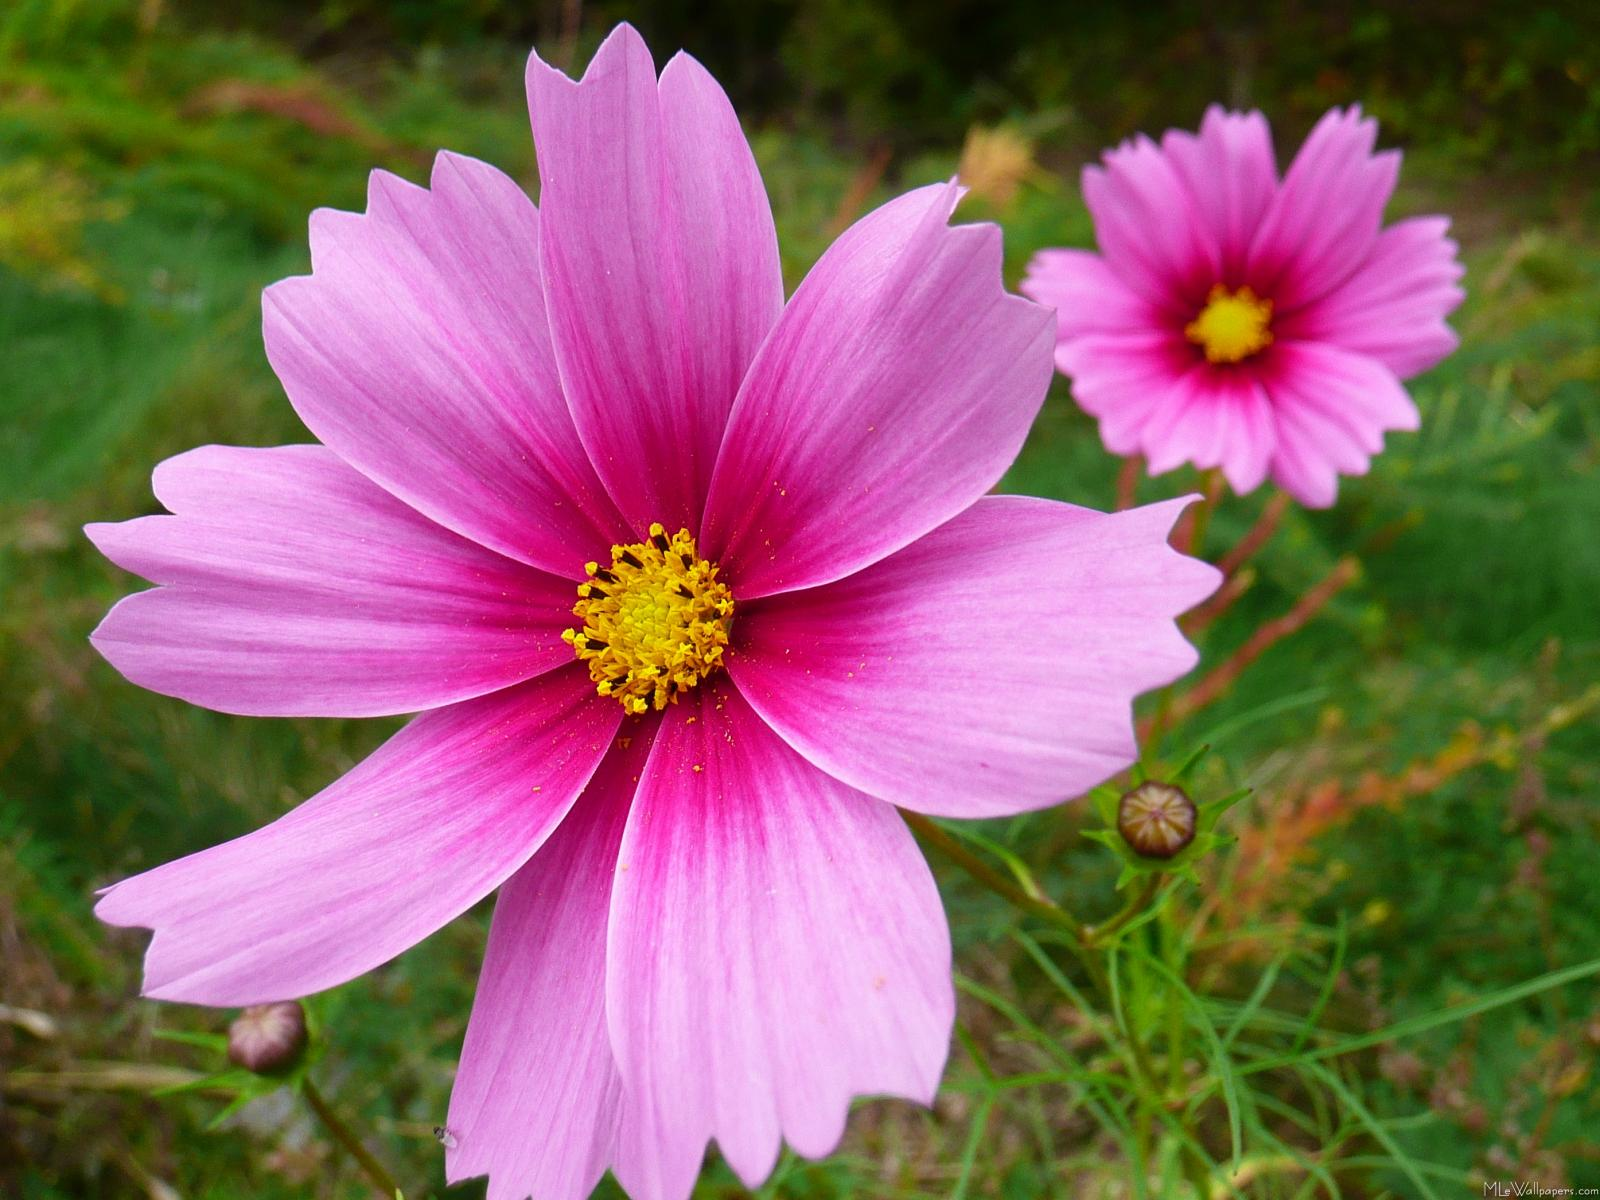 Daisys Mlewallpapers Com Pink Cosmos Flowers